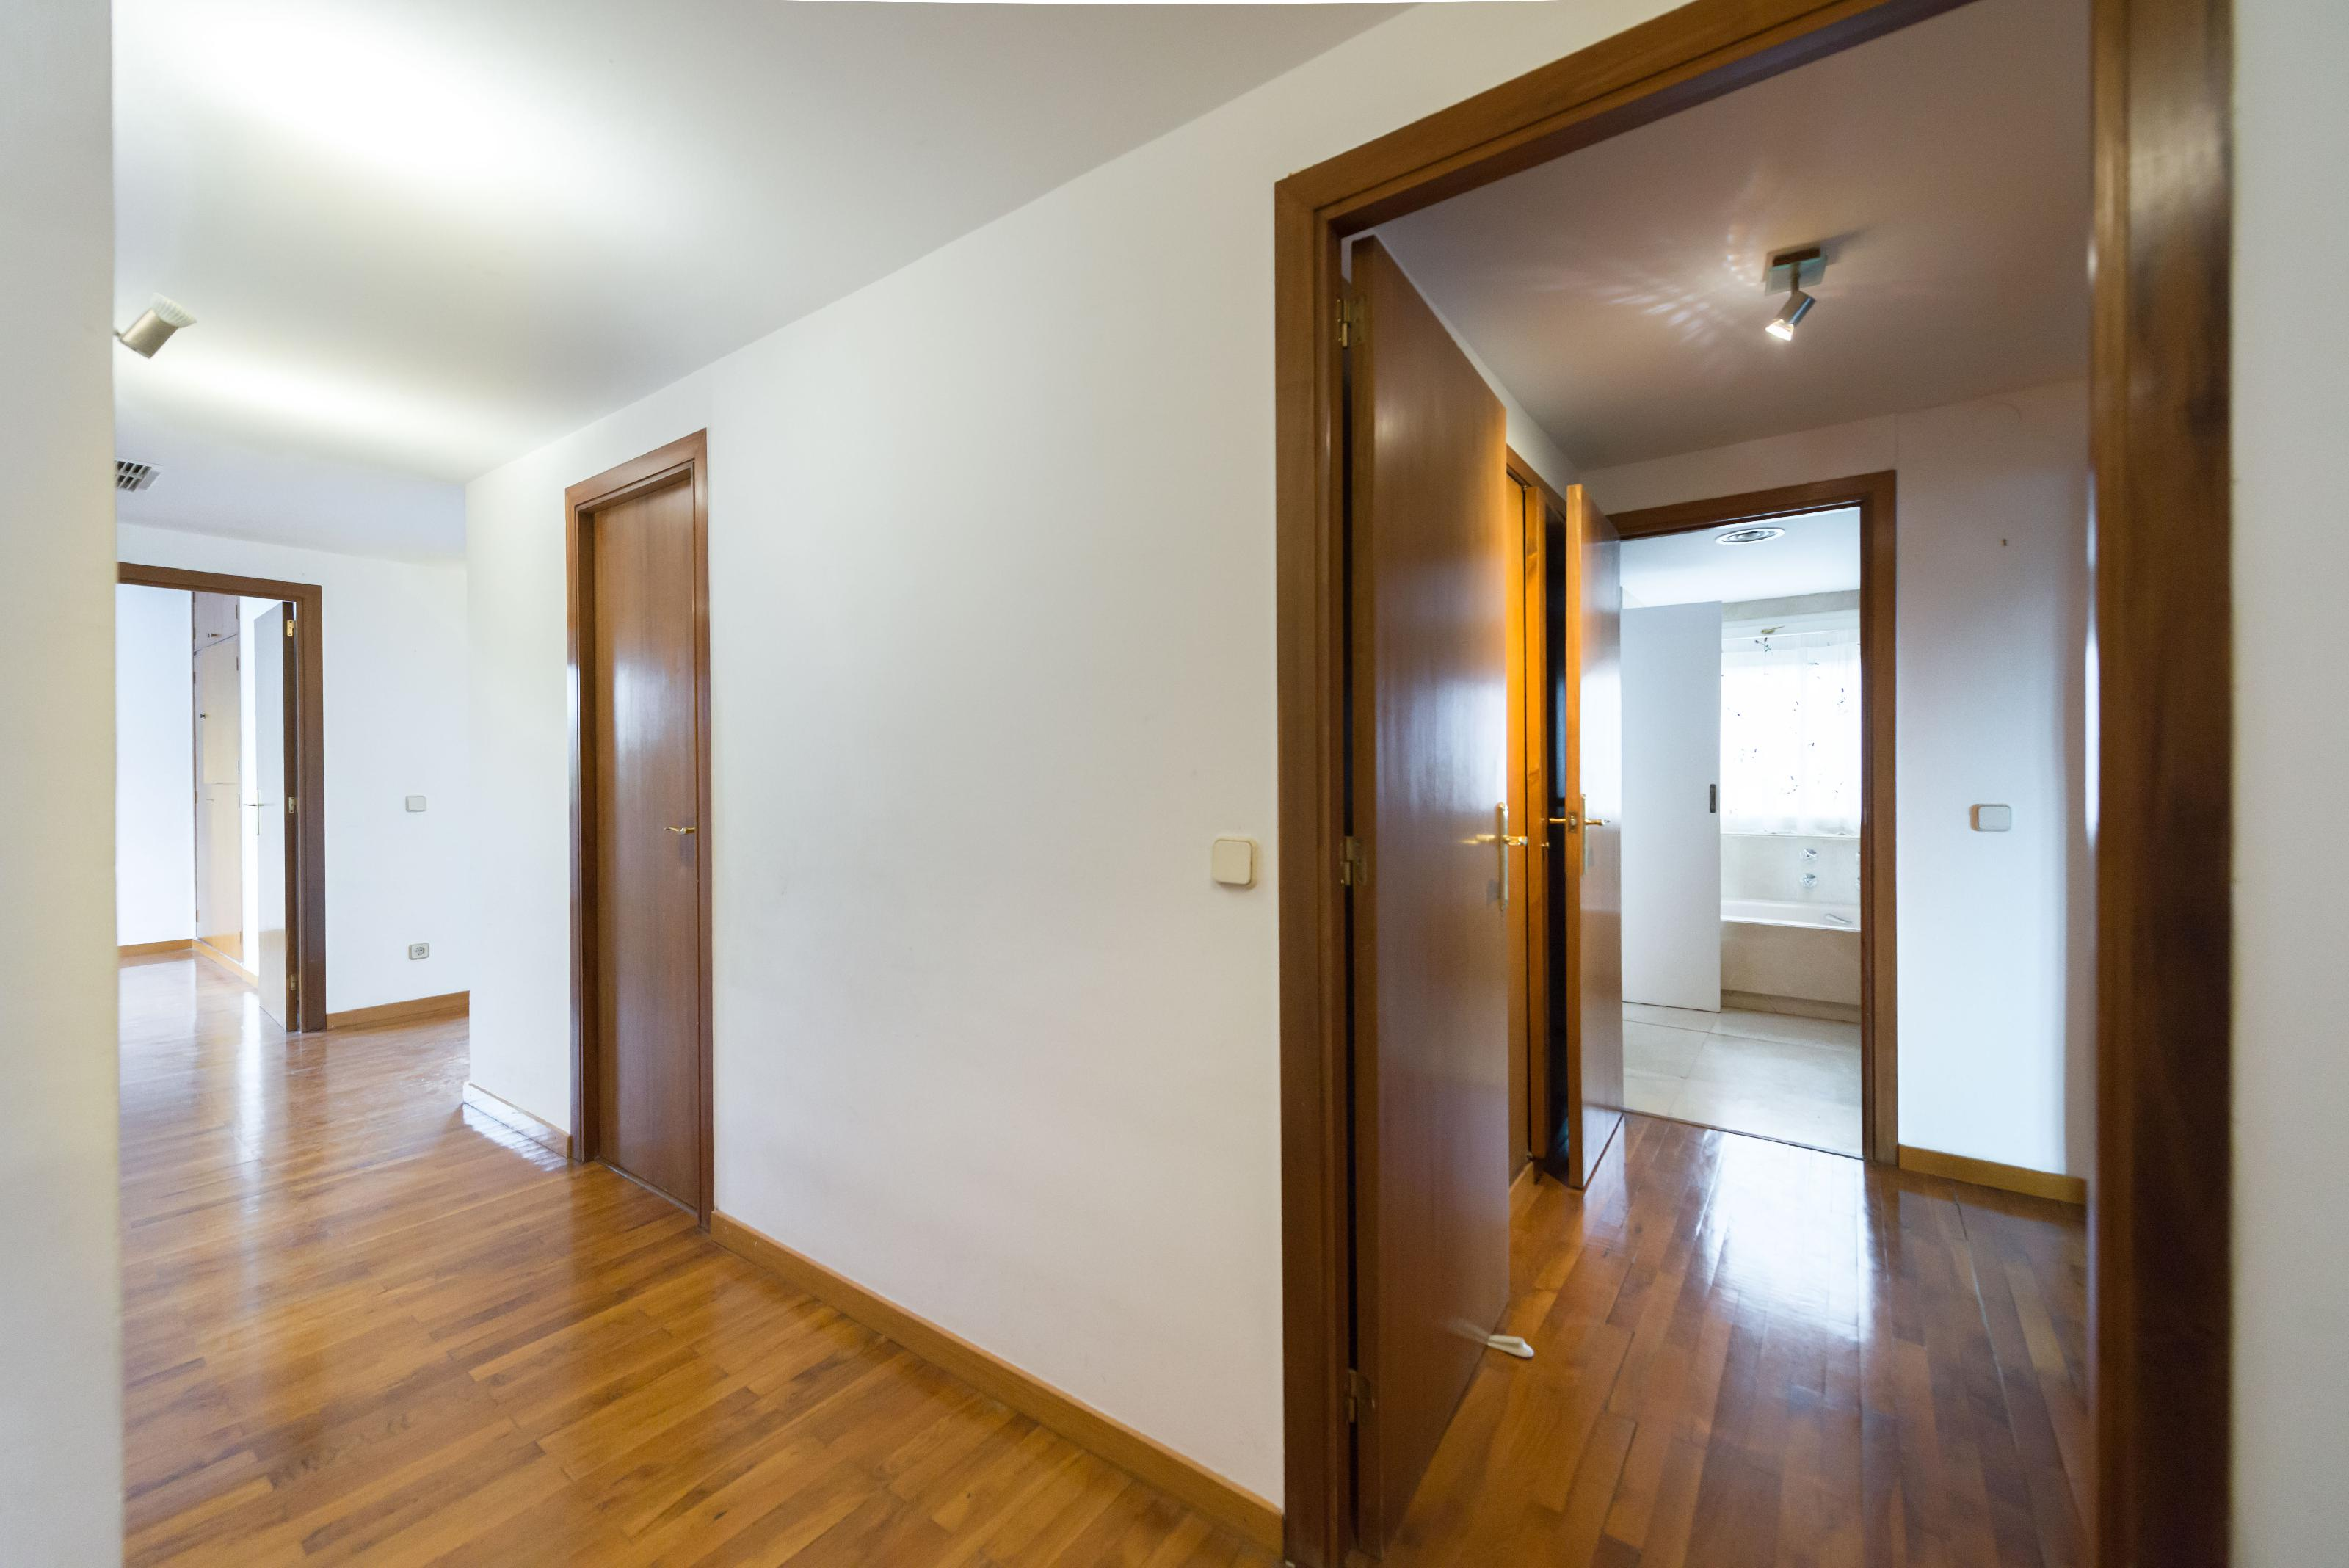 245495 Penthouse for sale in Les Corts, Pedralbes 29